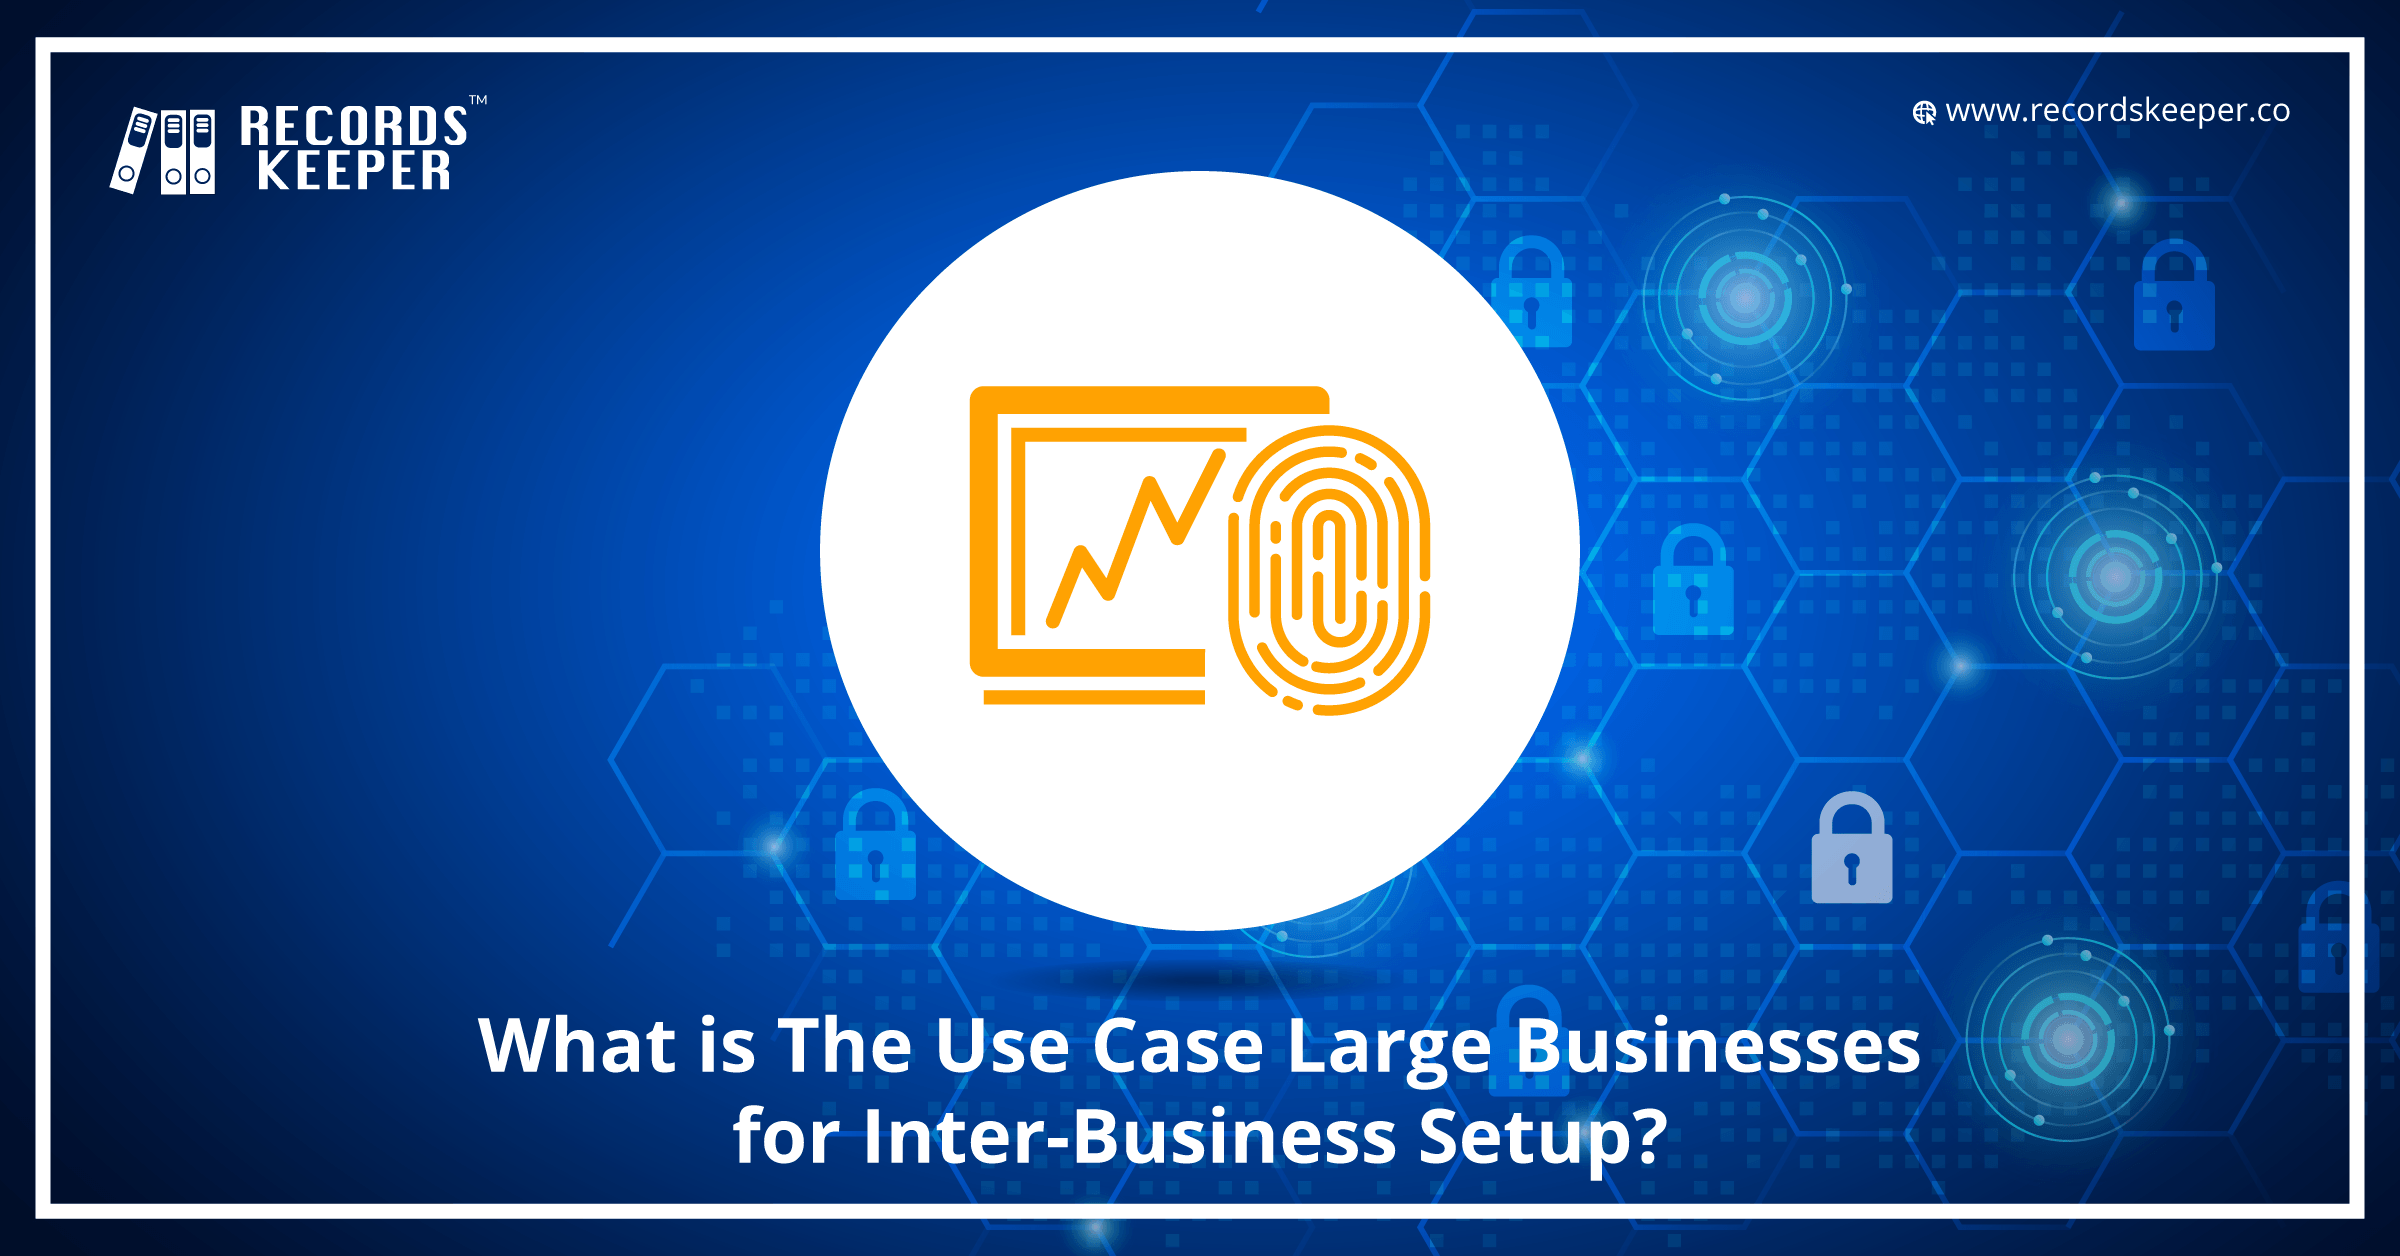 What is The Use Case Large Businesses for Inter-Business Setup?